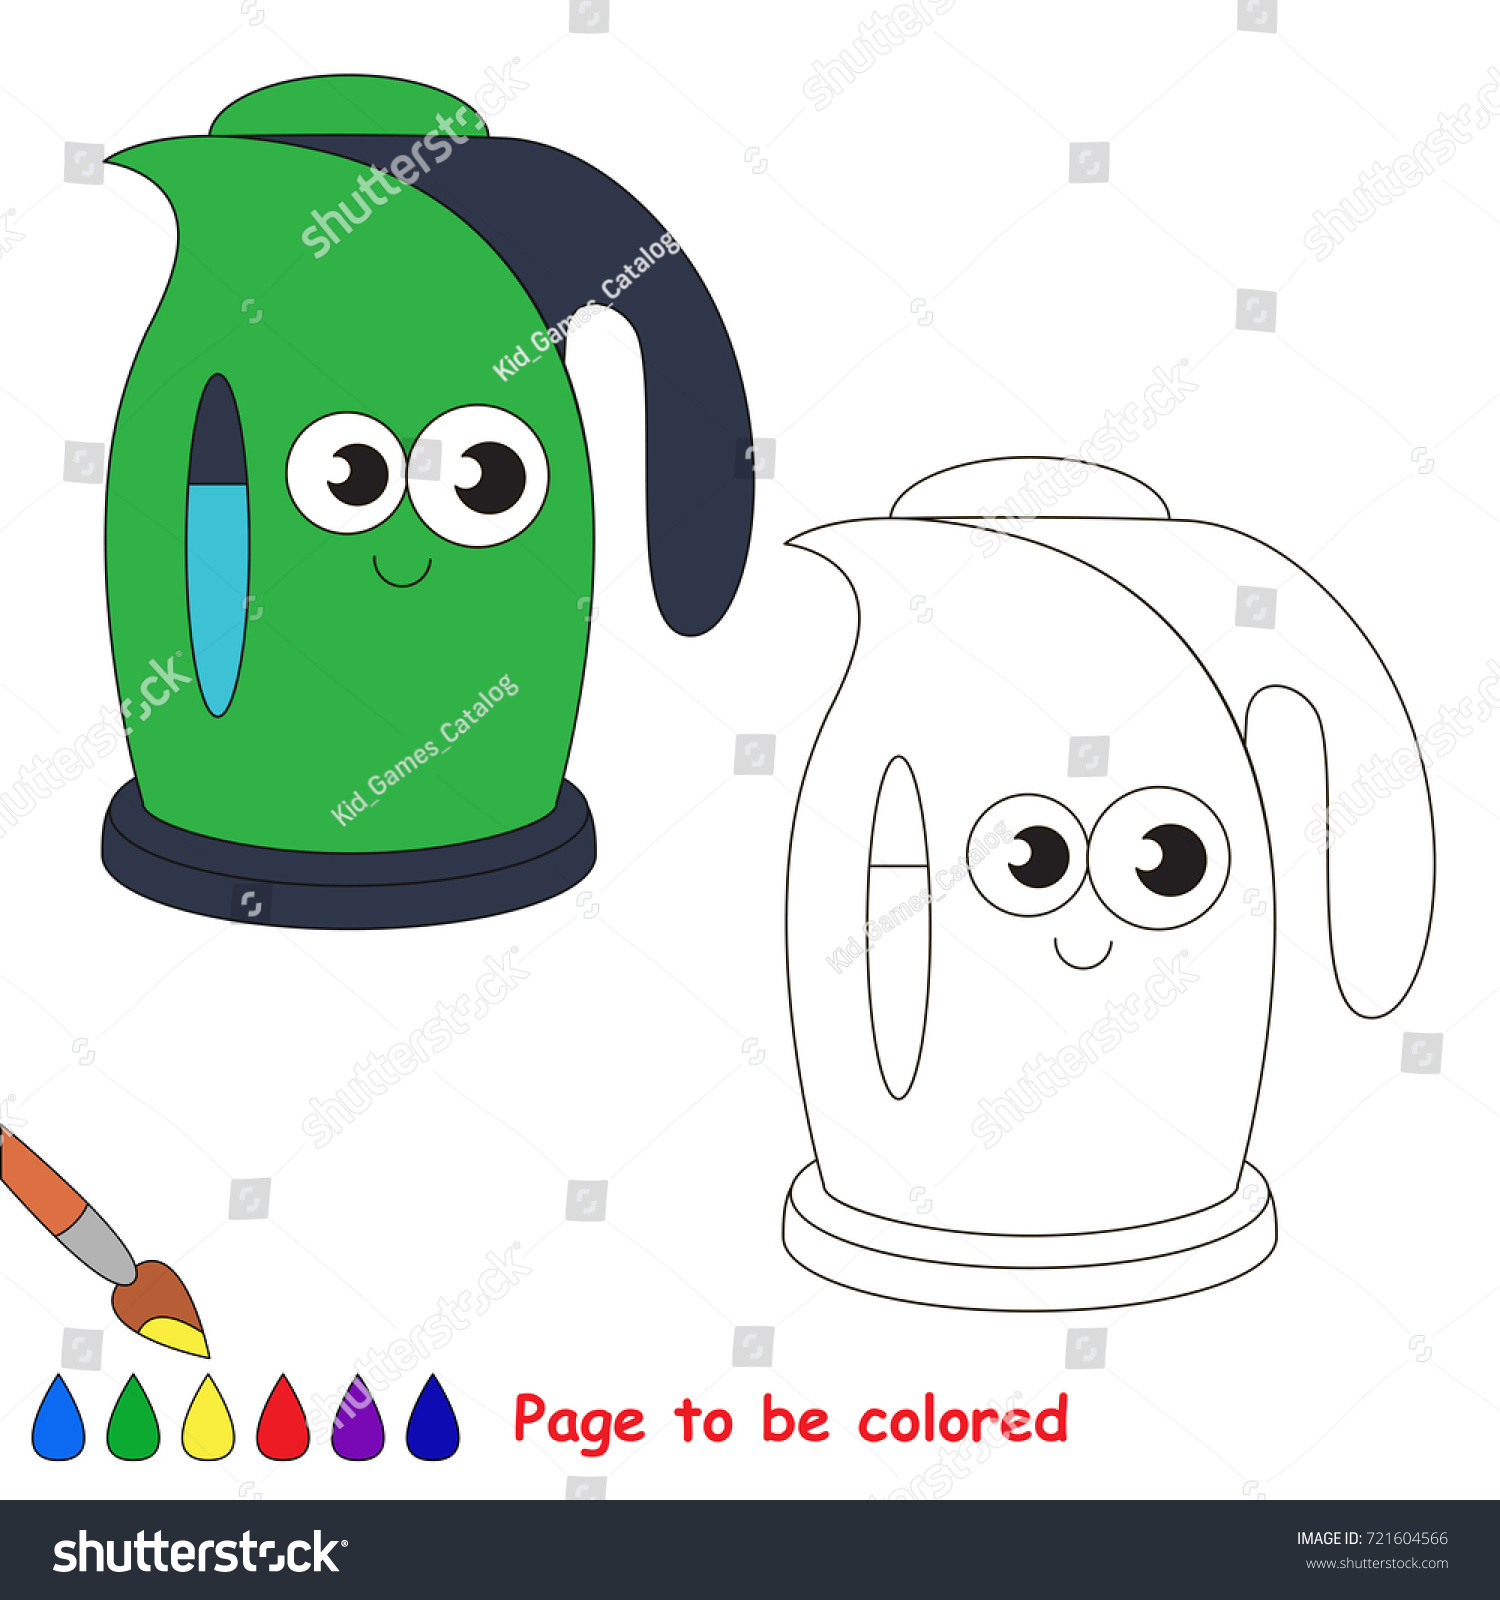 Funny Kettle Be Colored Coloring Book Stock Vector 721604566 ...